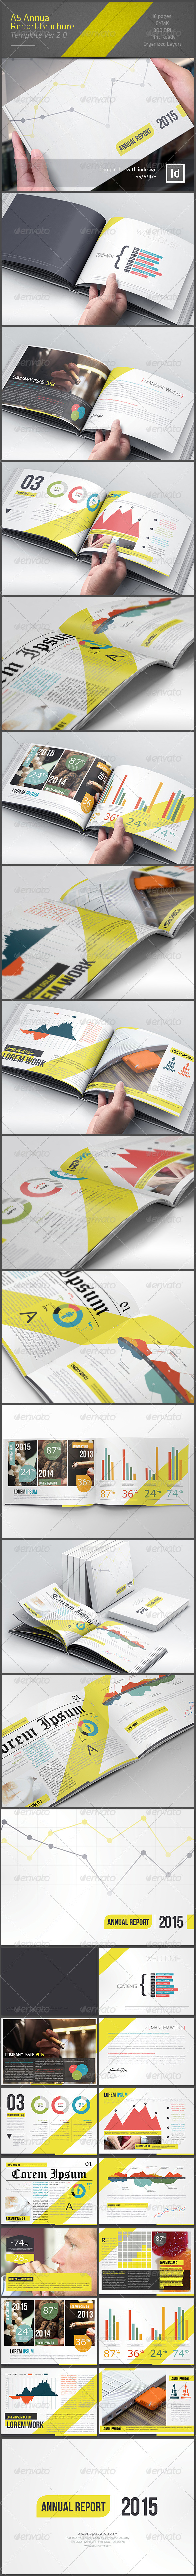 A5 Annual Report Brochure Ver 2.0